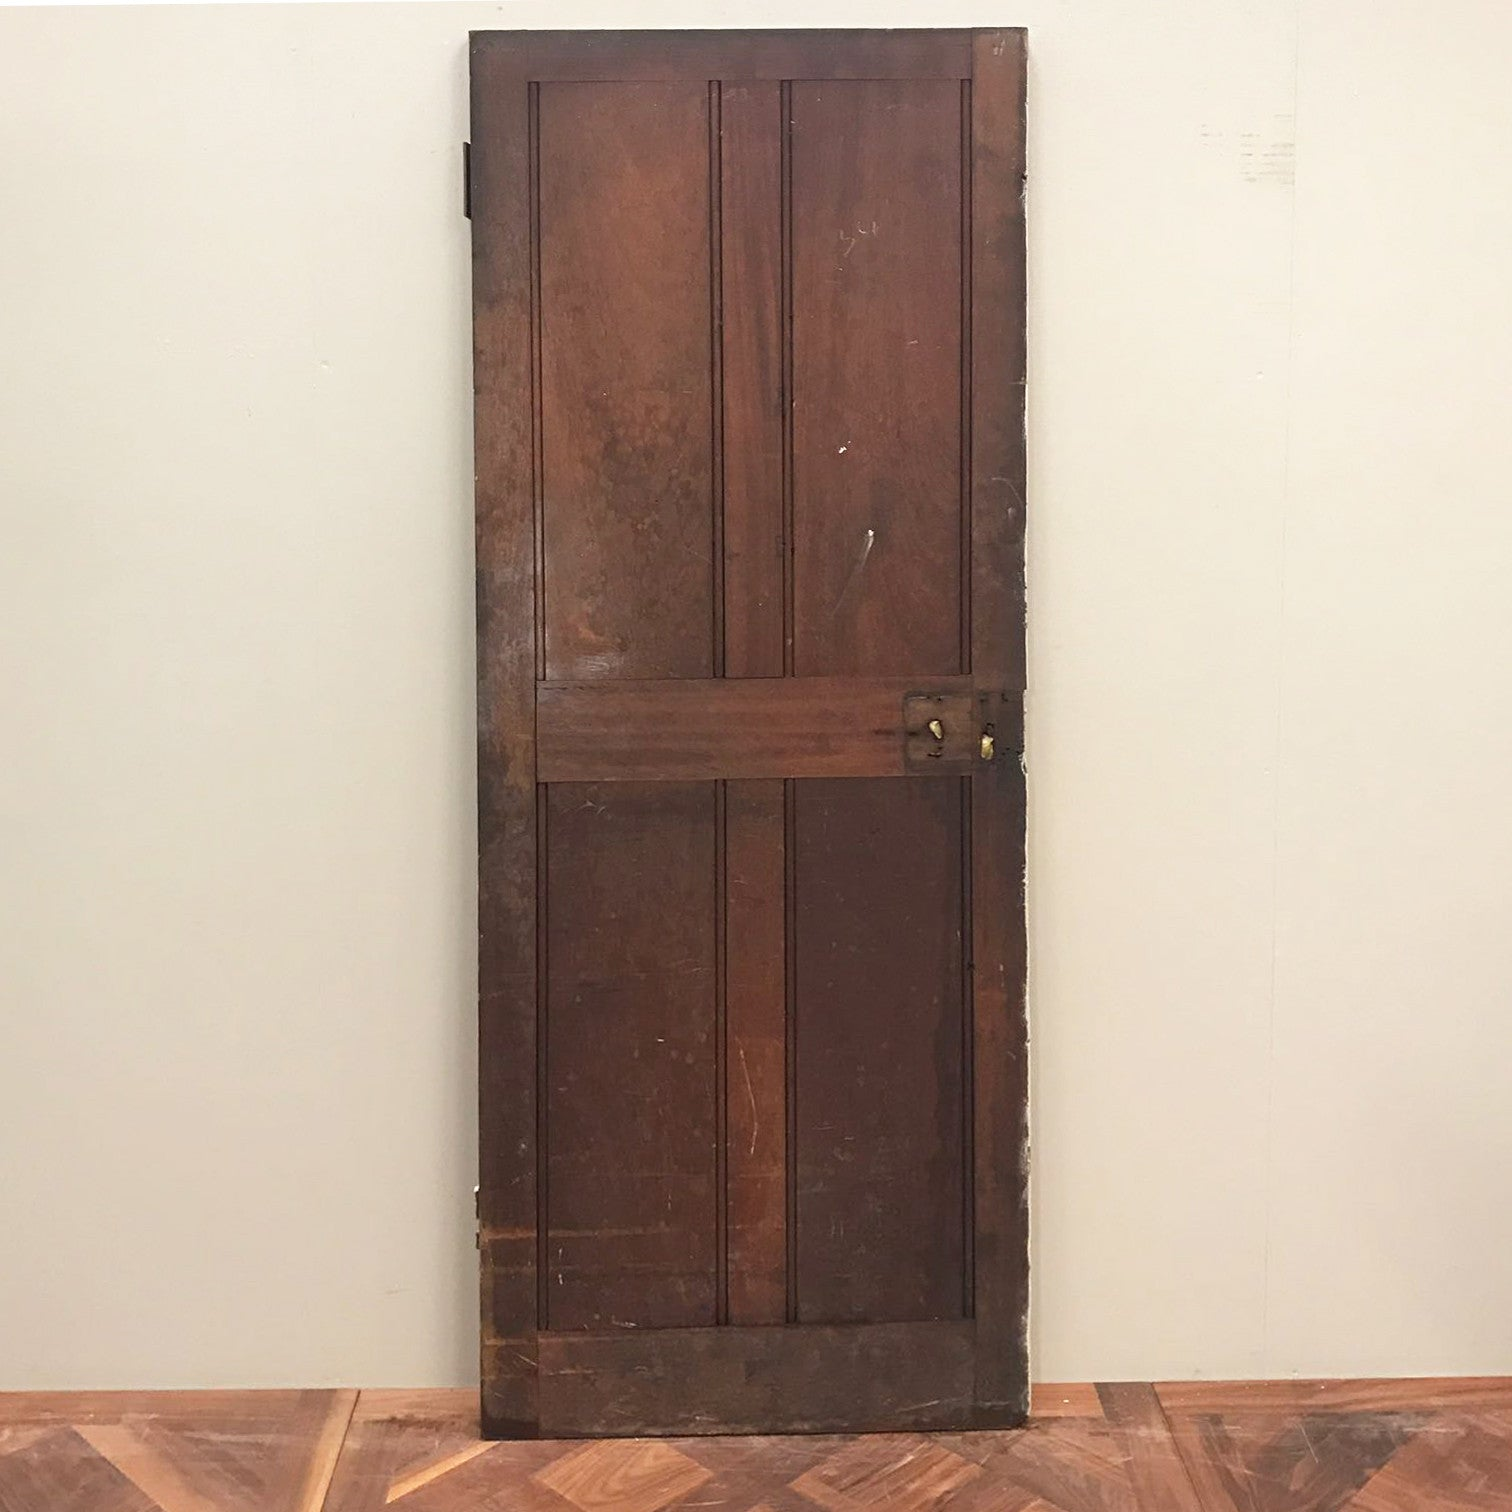 Reclaimed Teak Four Panel Door - 196cm x 68cm x 3.5cm | The Architectural Forum